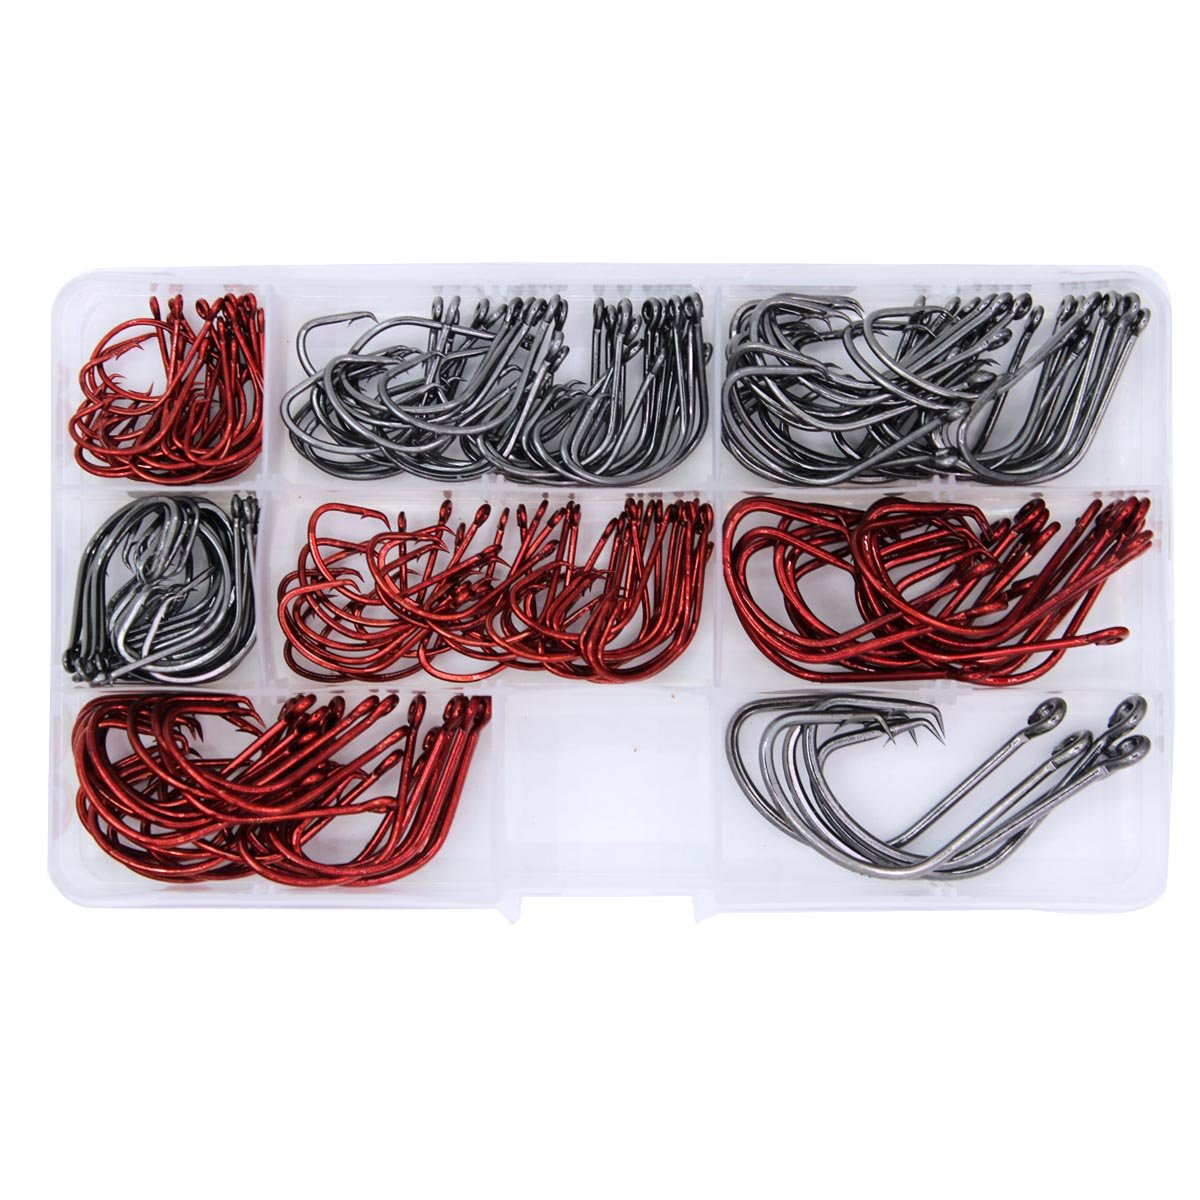 Wild.life® Lot 200pcs Sport Circle Hook Freshwater Saltwater High-carbon Steel Fishing Hooks Mix Size 7381